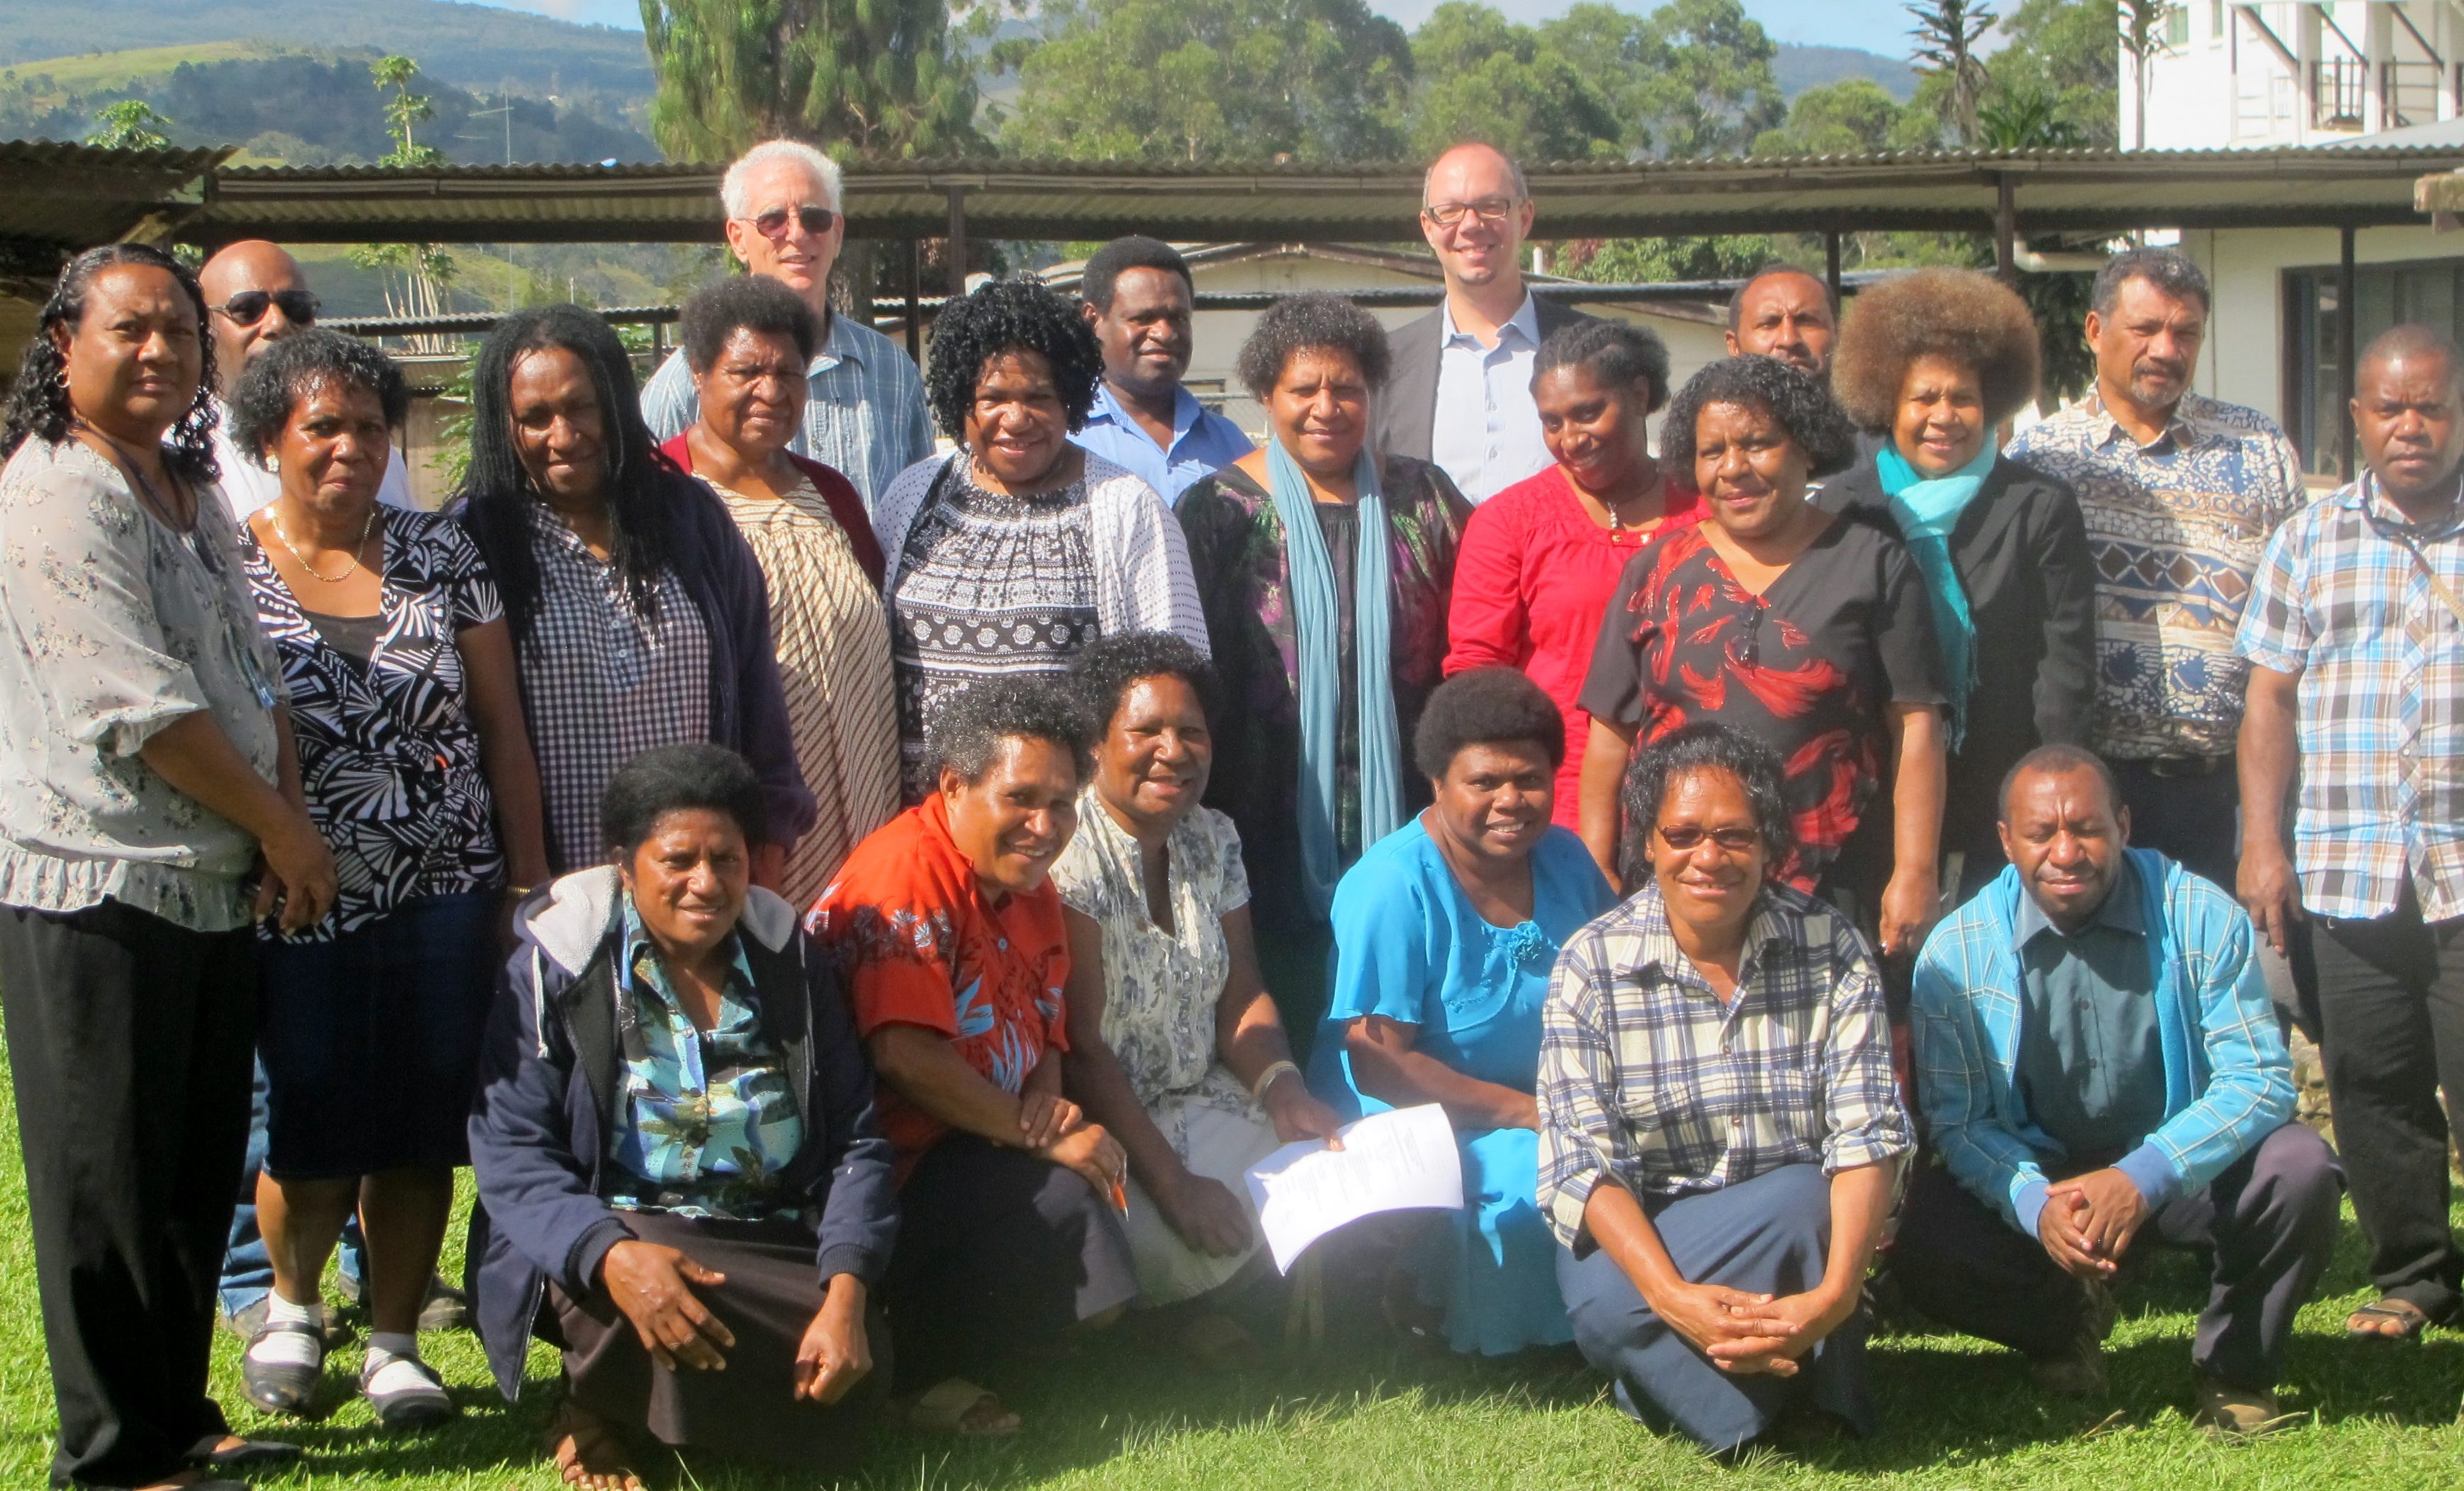 Librarians without Borders Training led by Lenny Rhine (second from left, back row) in Papua New Guinea, 2016